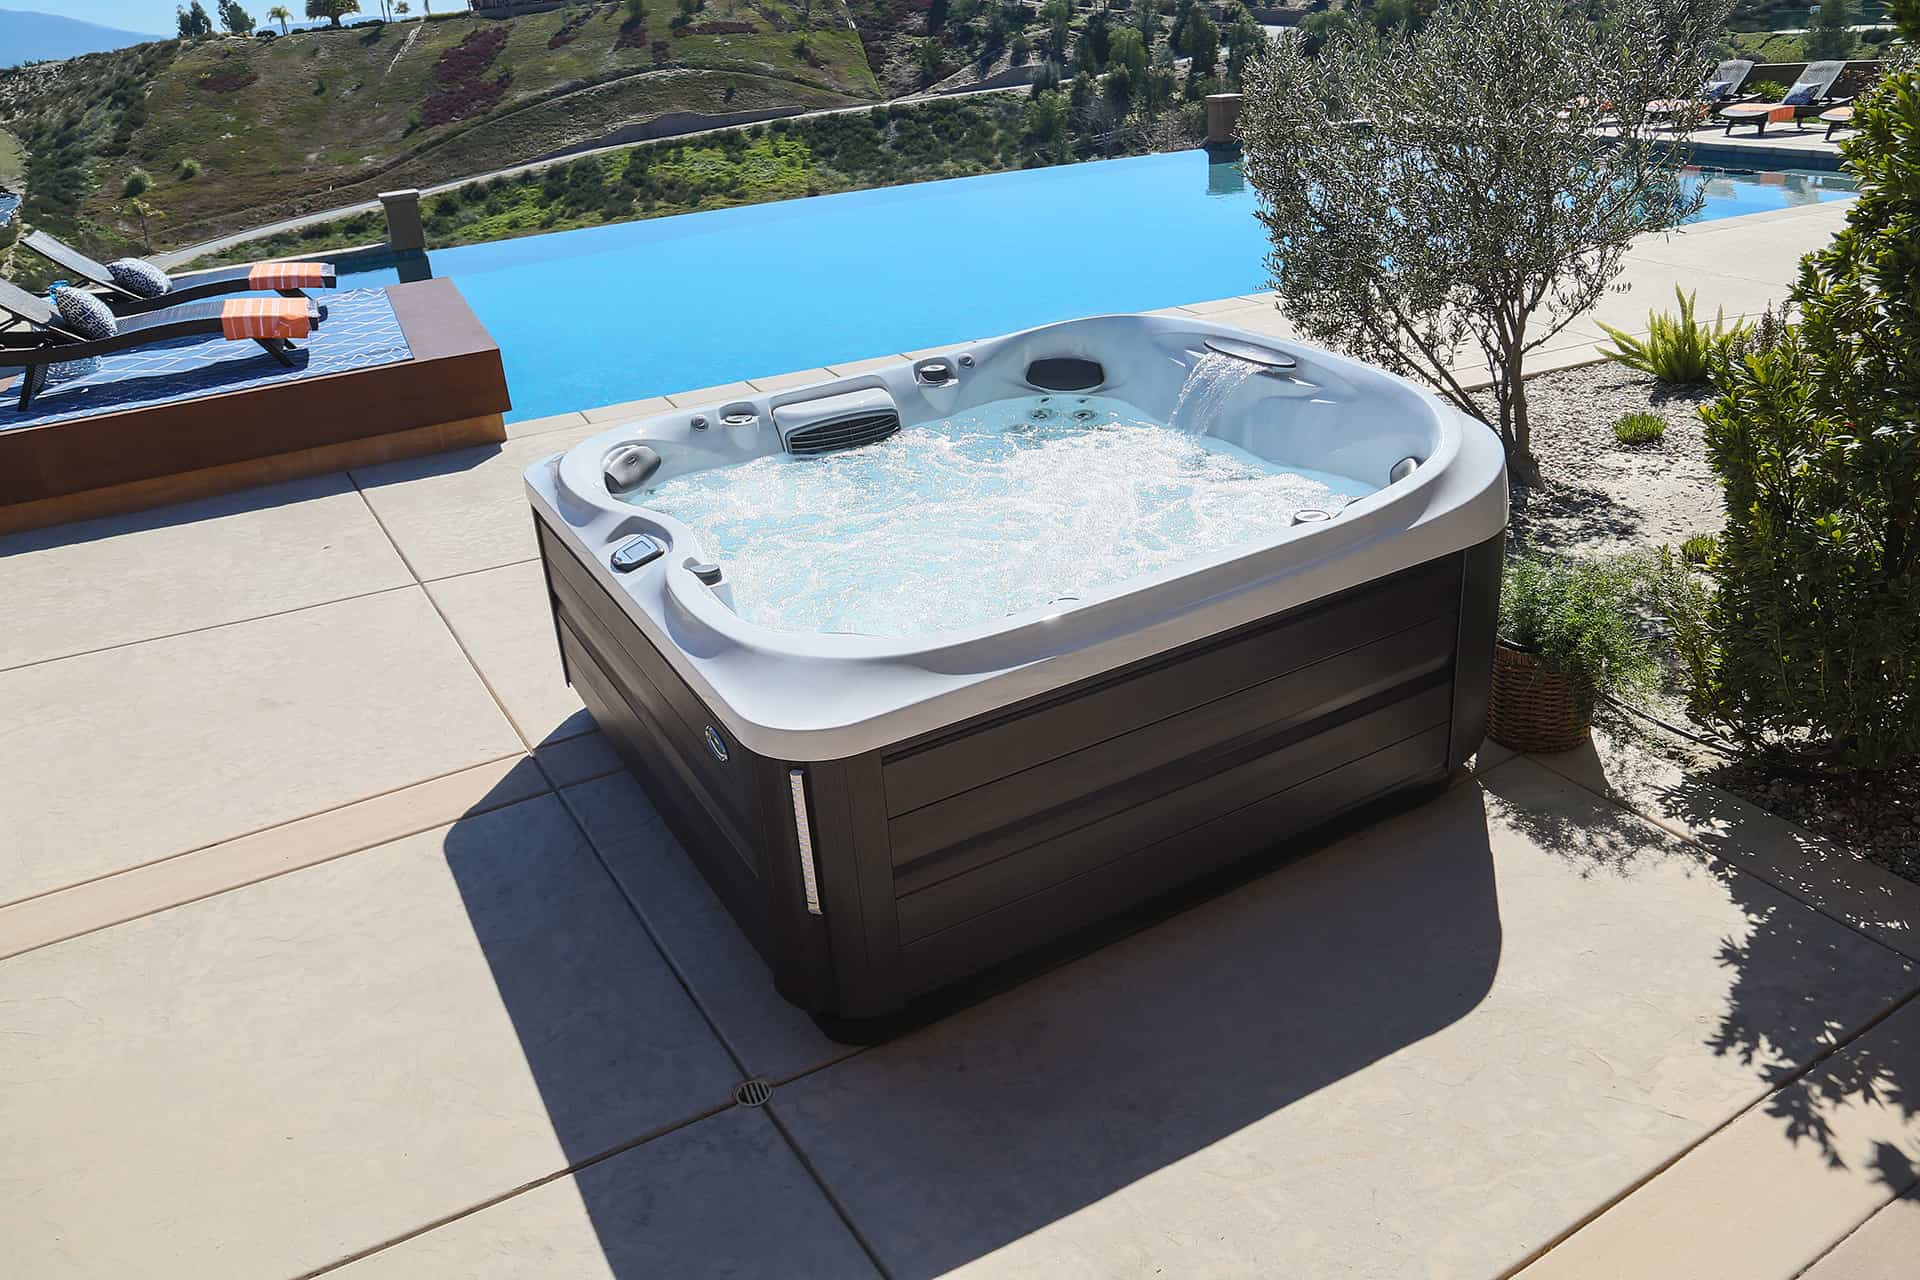 Jacuzzi hot tub next to pool in Ocala Florida